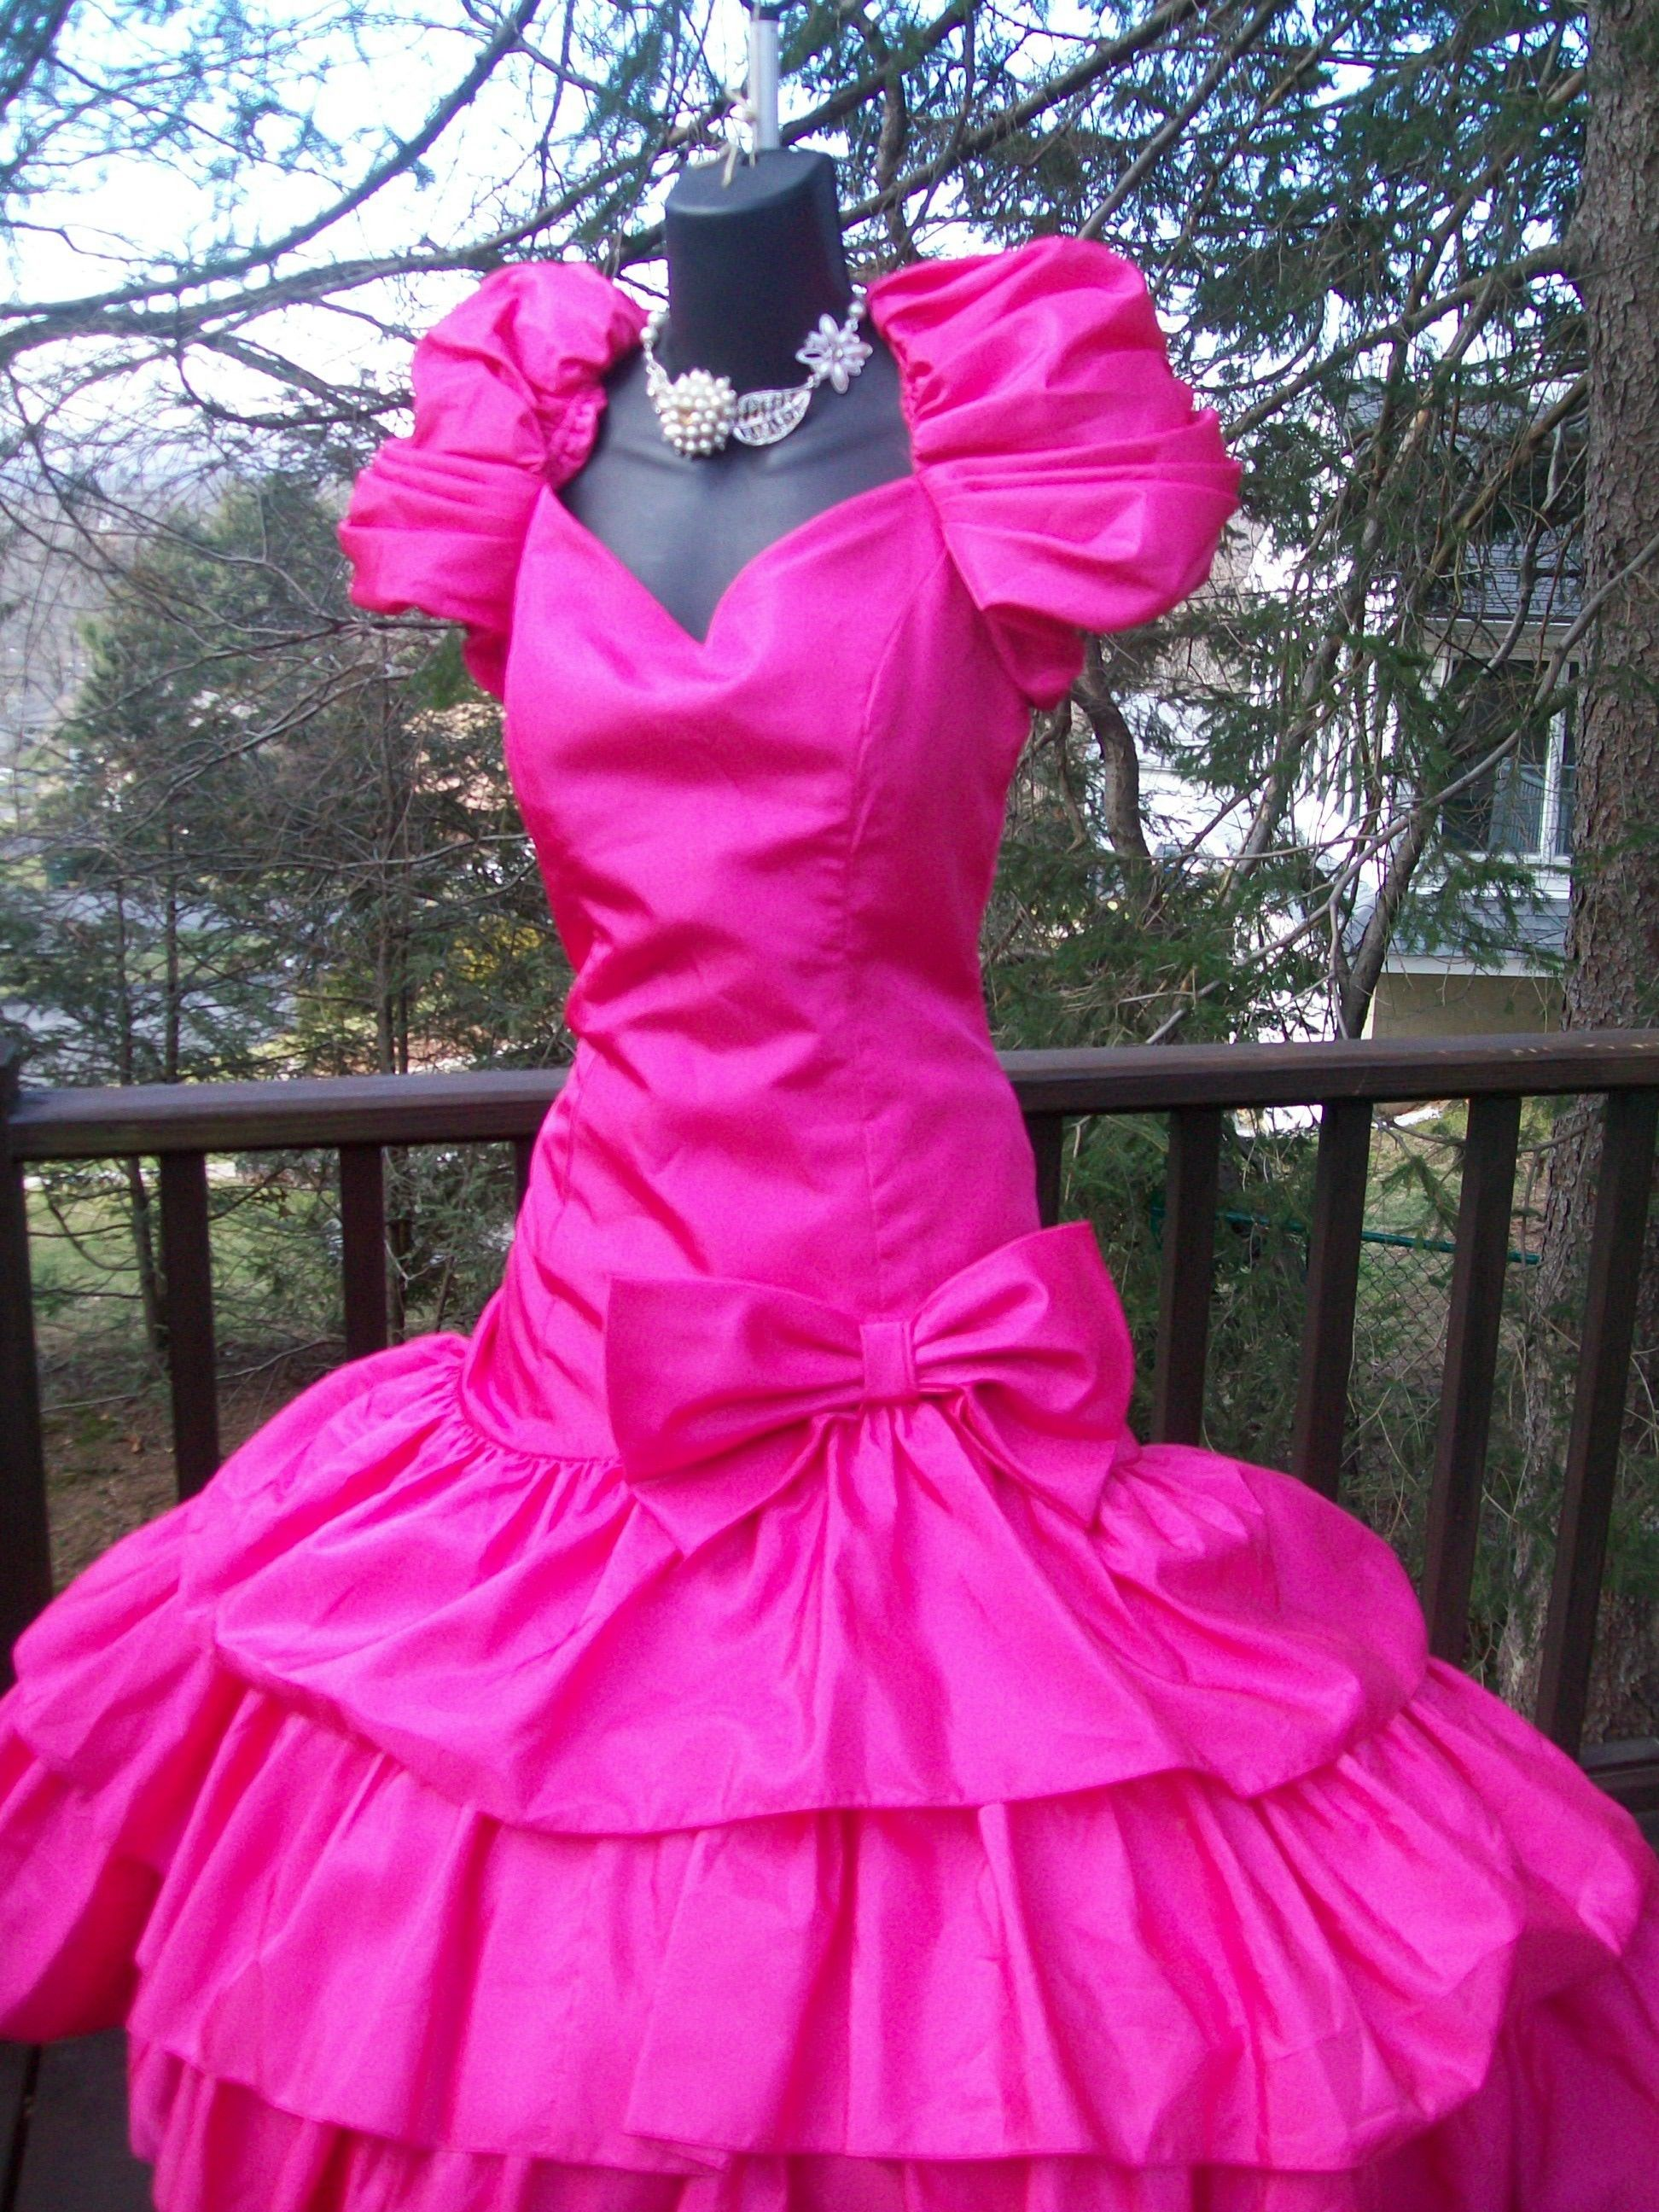 S pink prom party dress this one just sold but i have many many